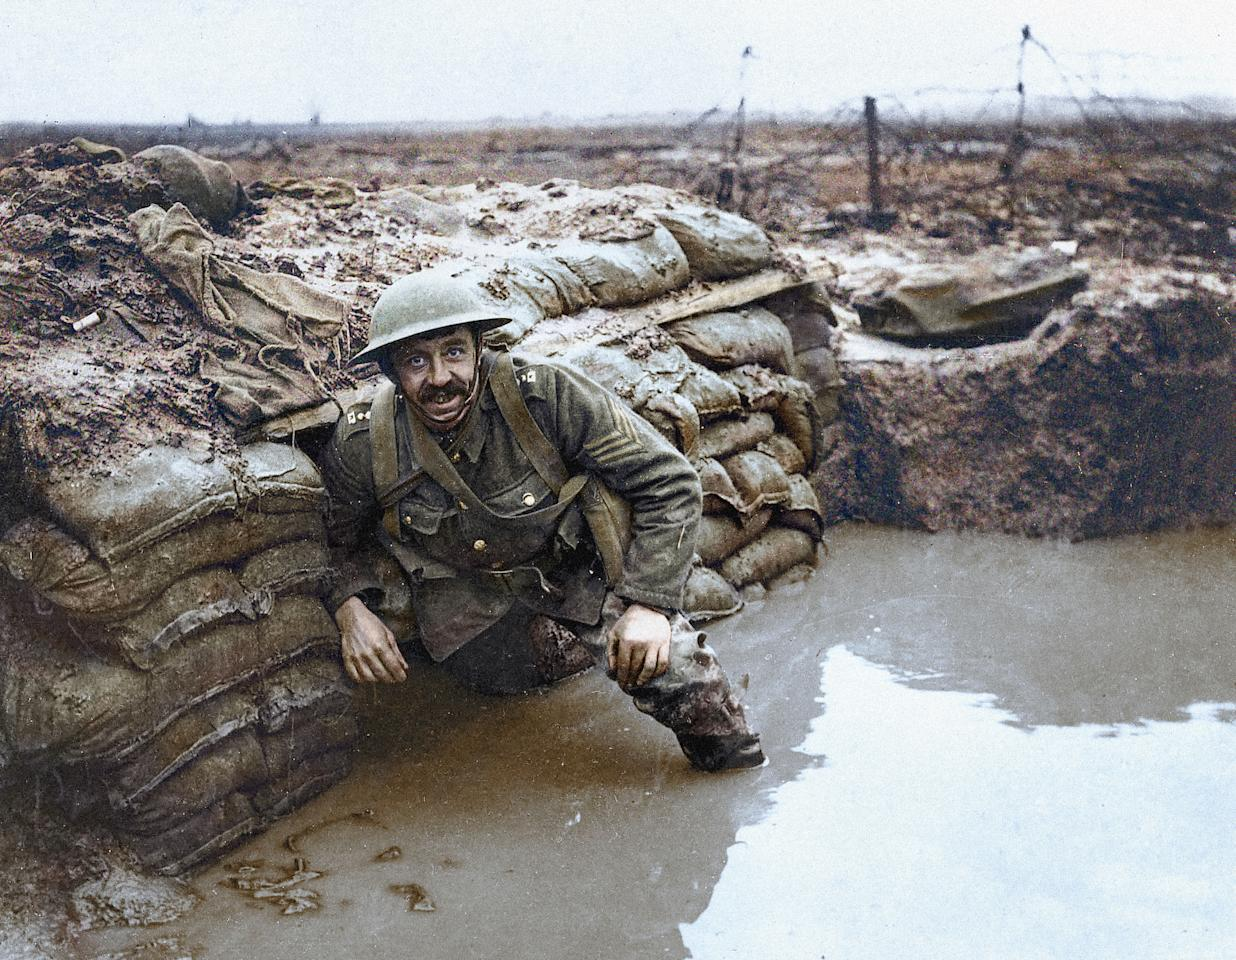 <p>A British sergeant in the trenches in Flanders in early 1917, surrounded by sandbags, barbed wire, and muddy water. (Head of Zeus Books) </p>